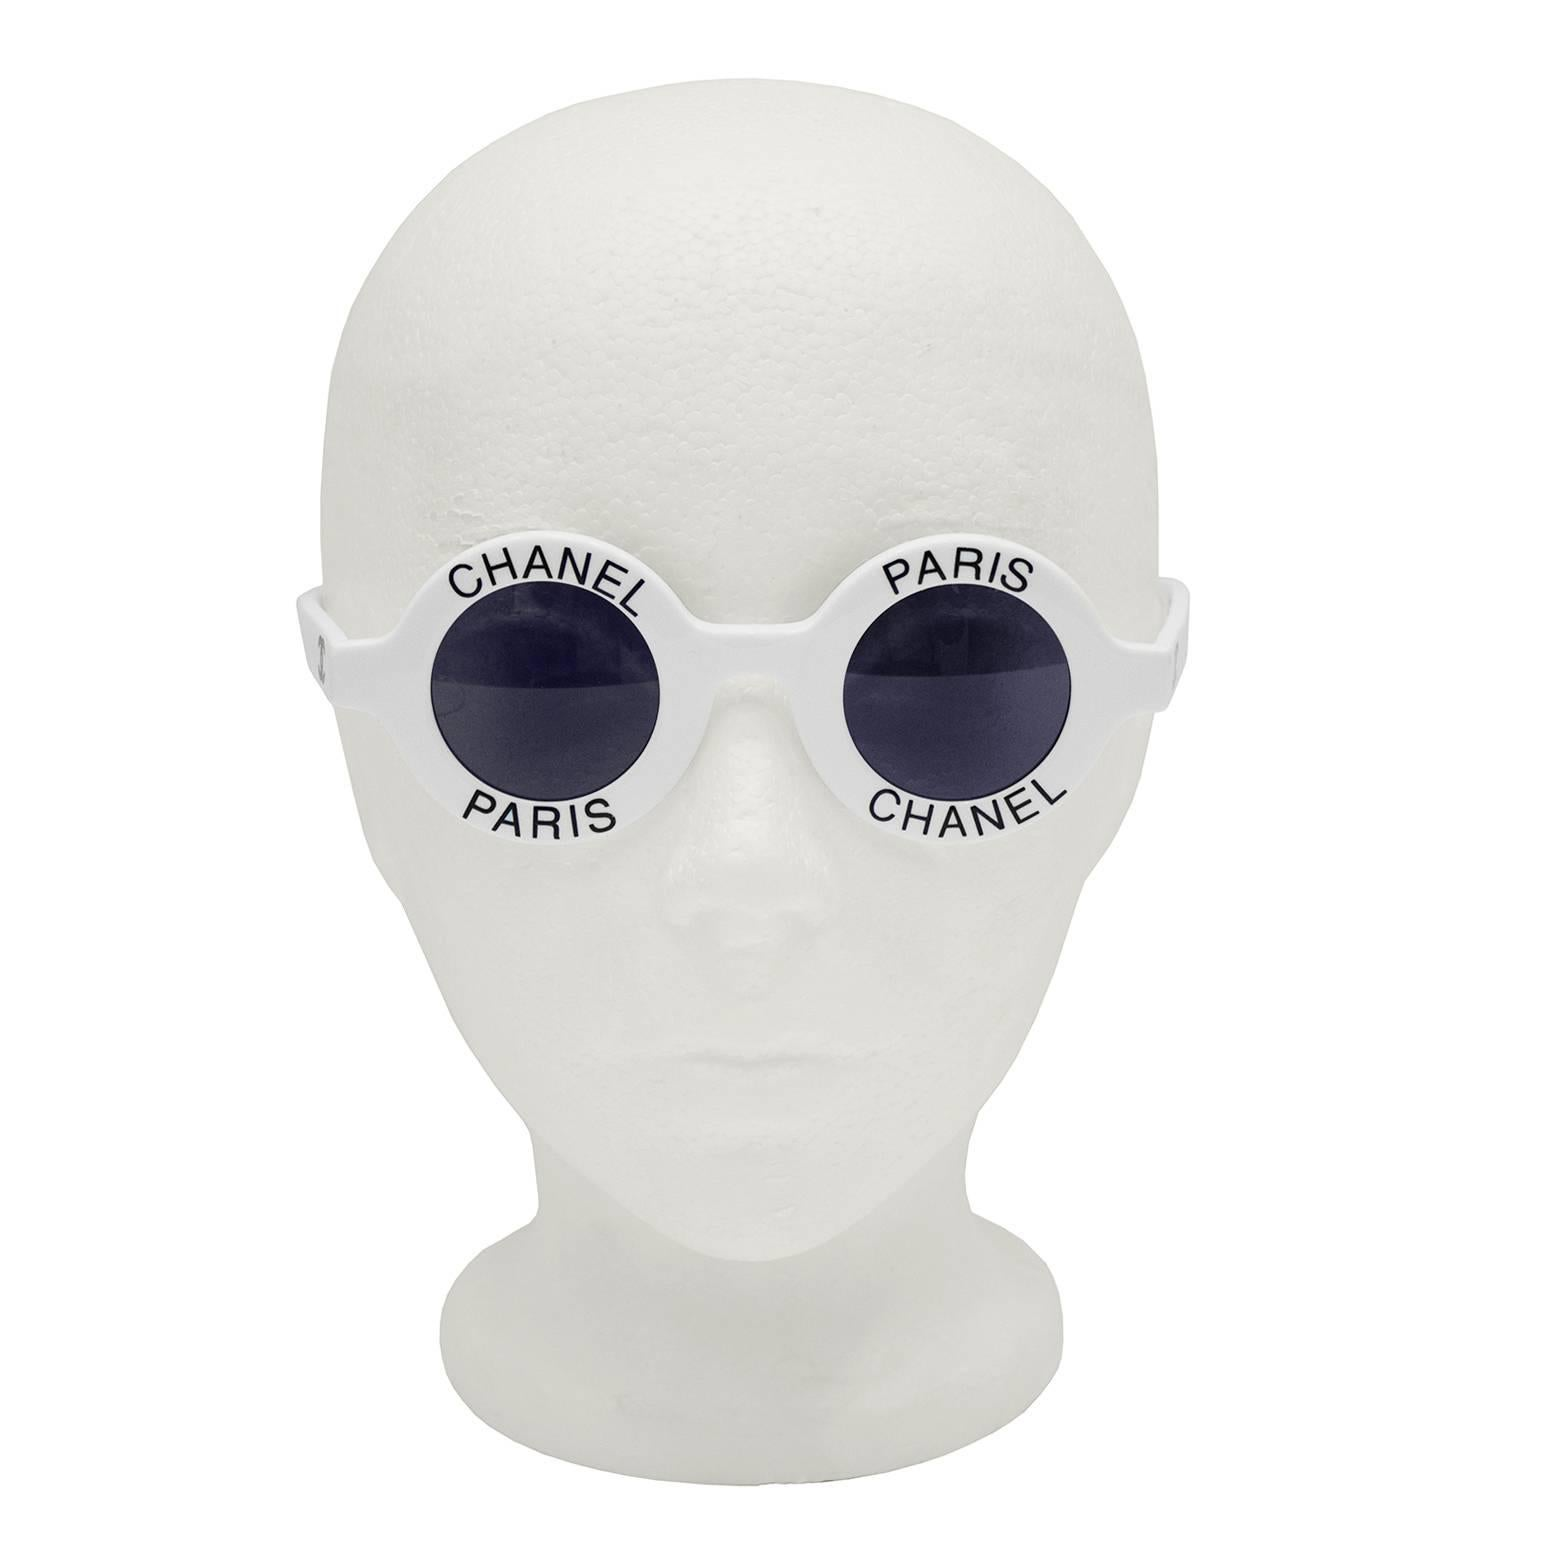 8bd61dc6f26d 1990's Iconic White Chanel Paris Round Sunglasses For Sale at 1stdibs